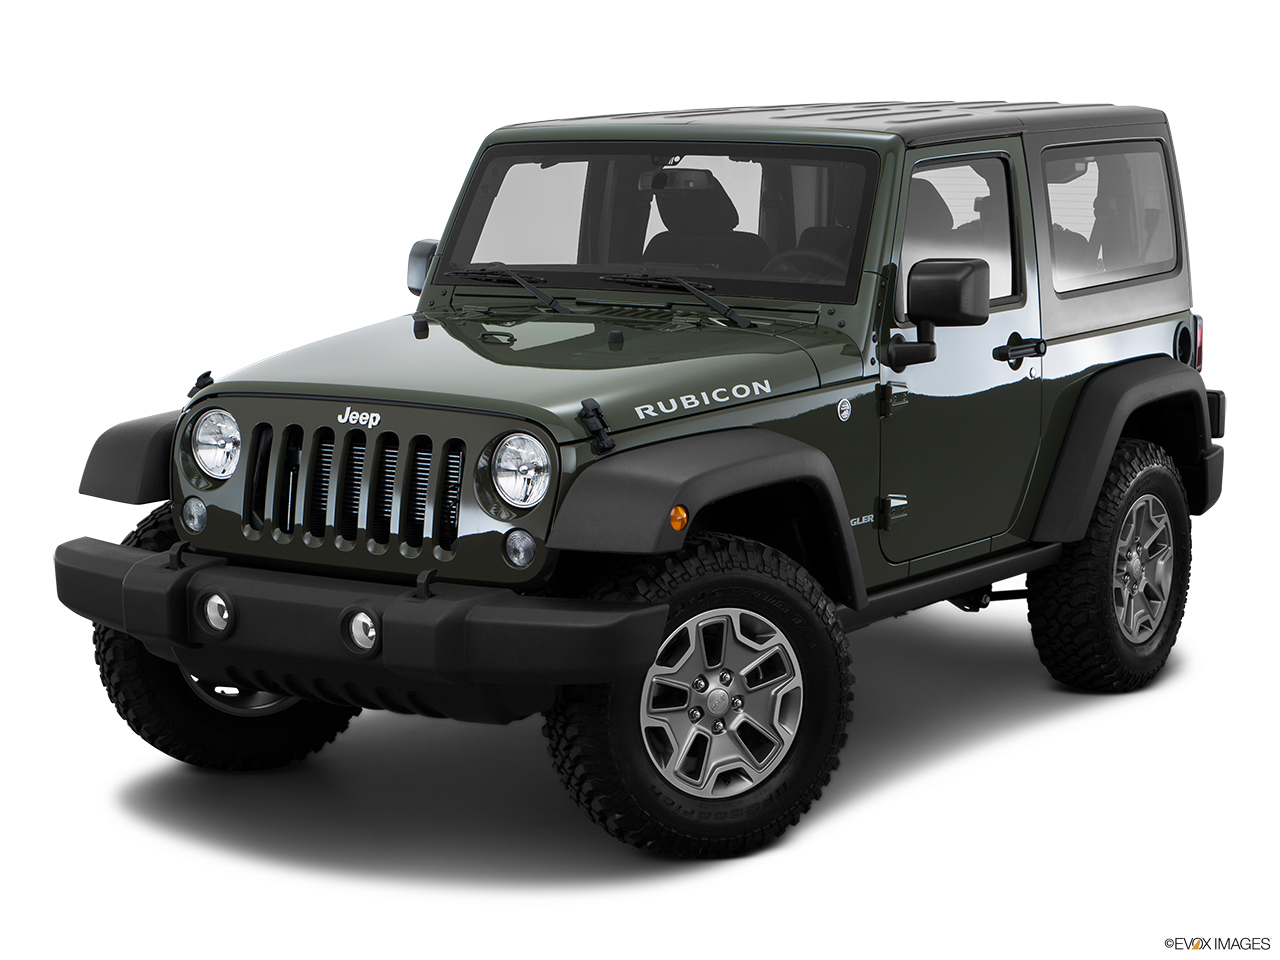 car features list for jeep wrangler 2016 rubicon 3 6l auto  uae